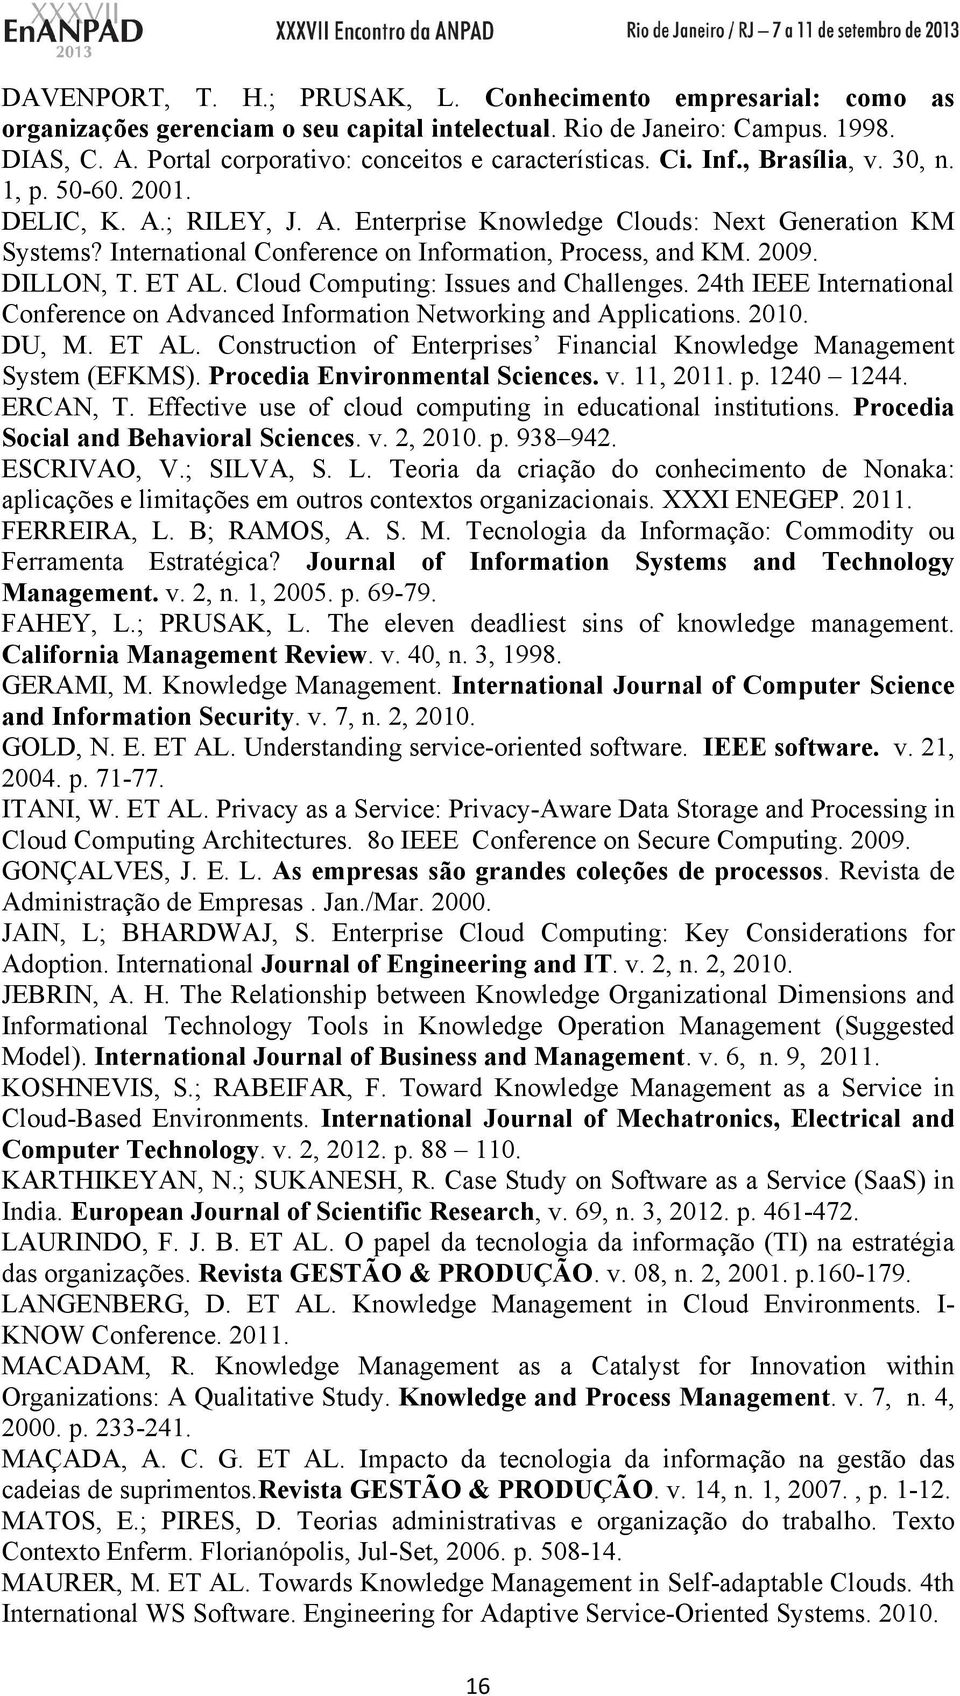 International Conference on Information, Process, and KM. 2009. DILLON, T. ET AL. Cloud Computing: Issues and Challenges.